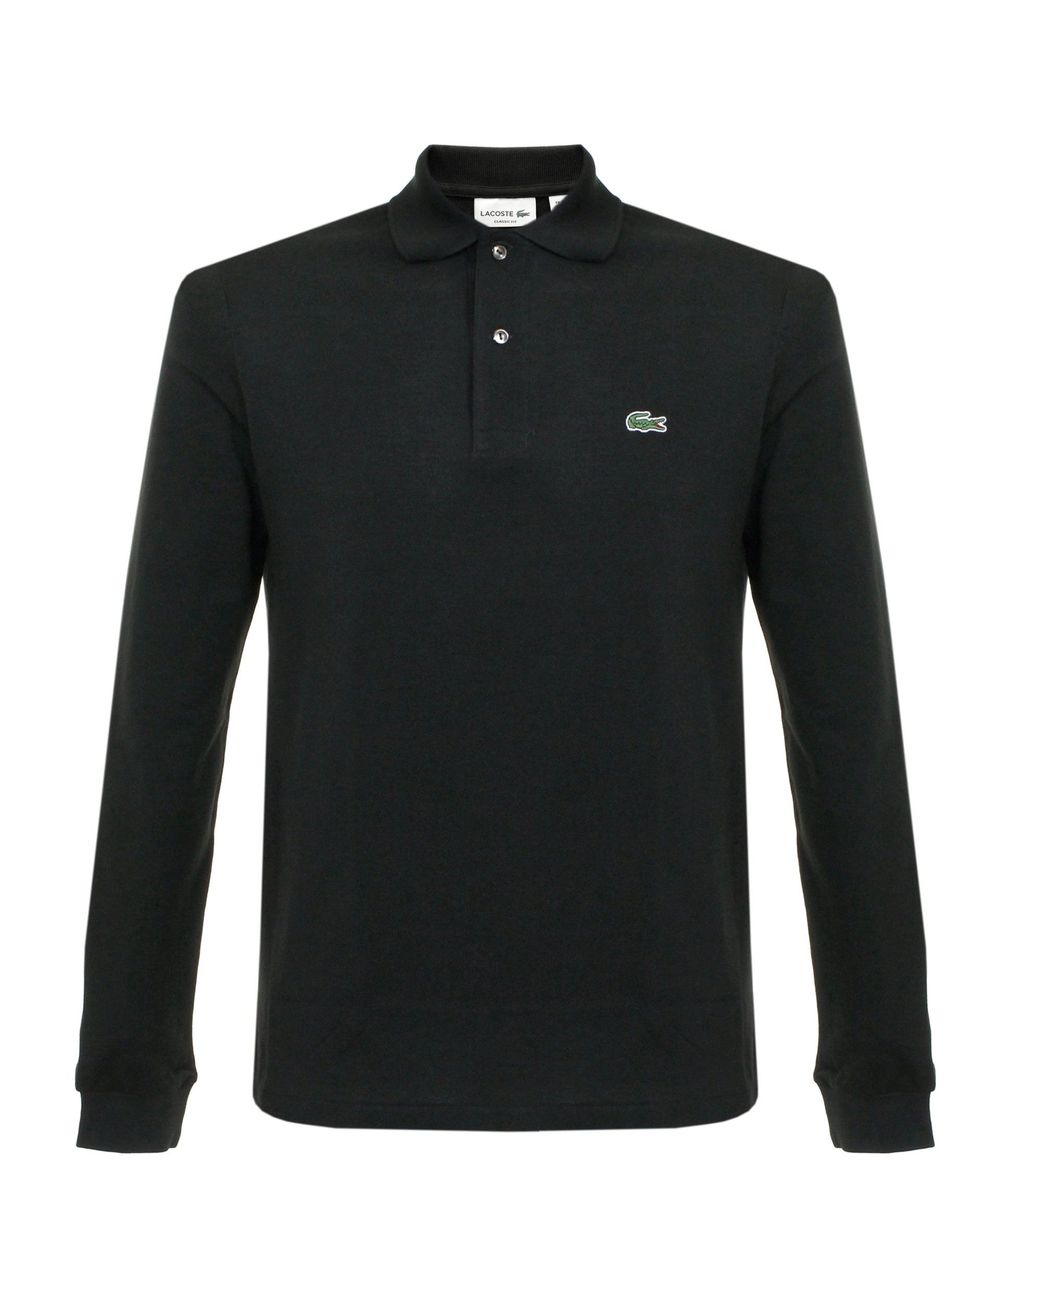 a921fa88c Lacoste Pique Black Ls Polo Shirt L1312 in Black for Men - Save 15% - Lyst